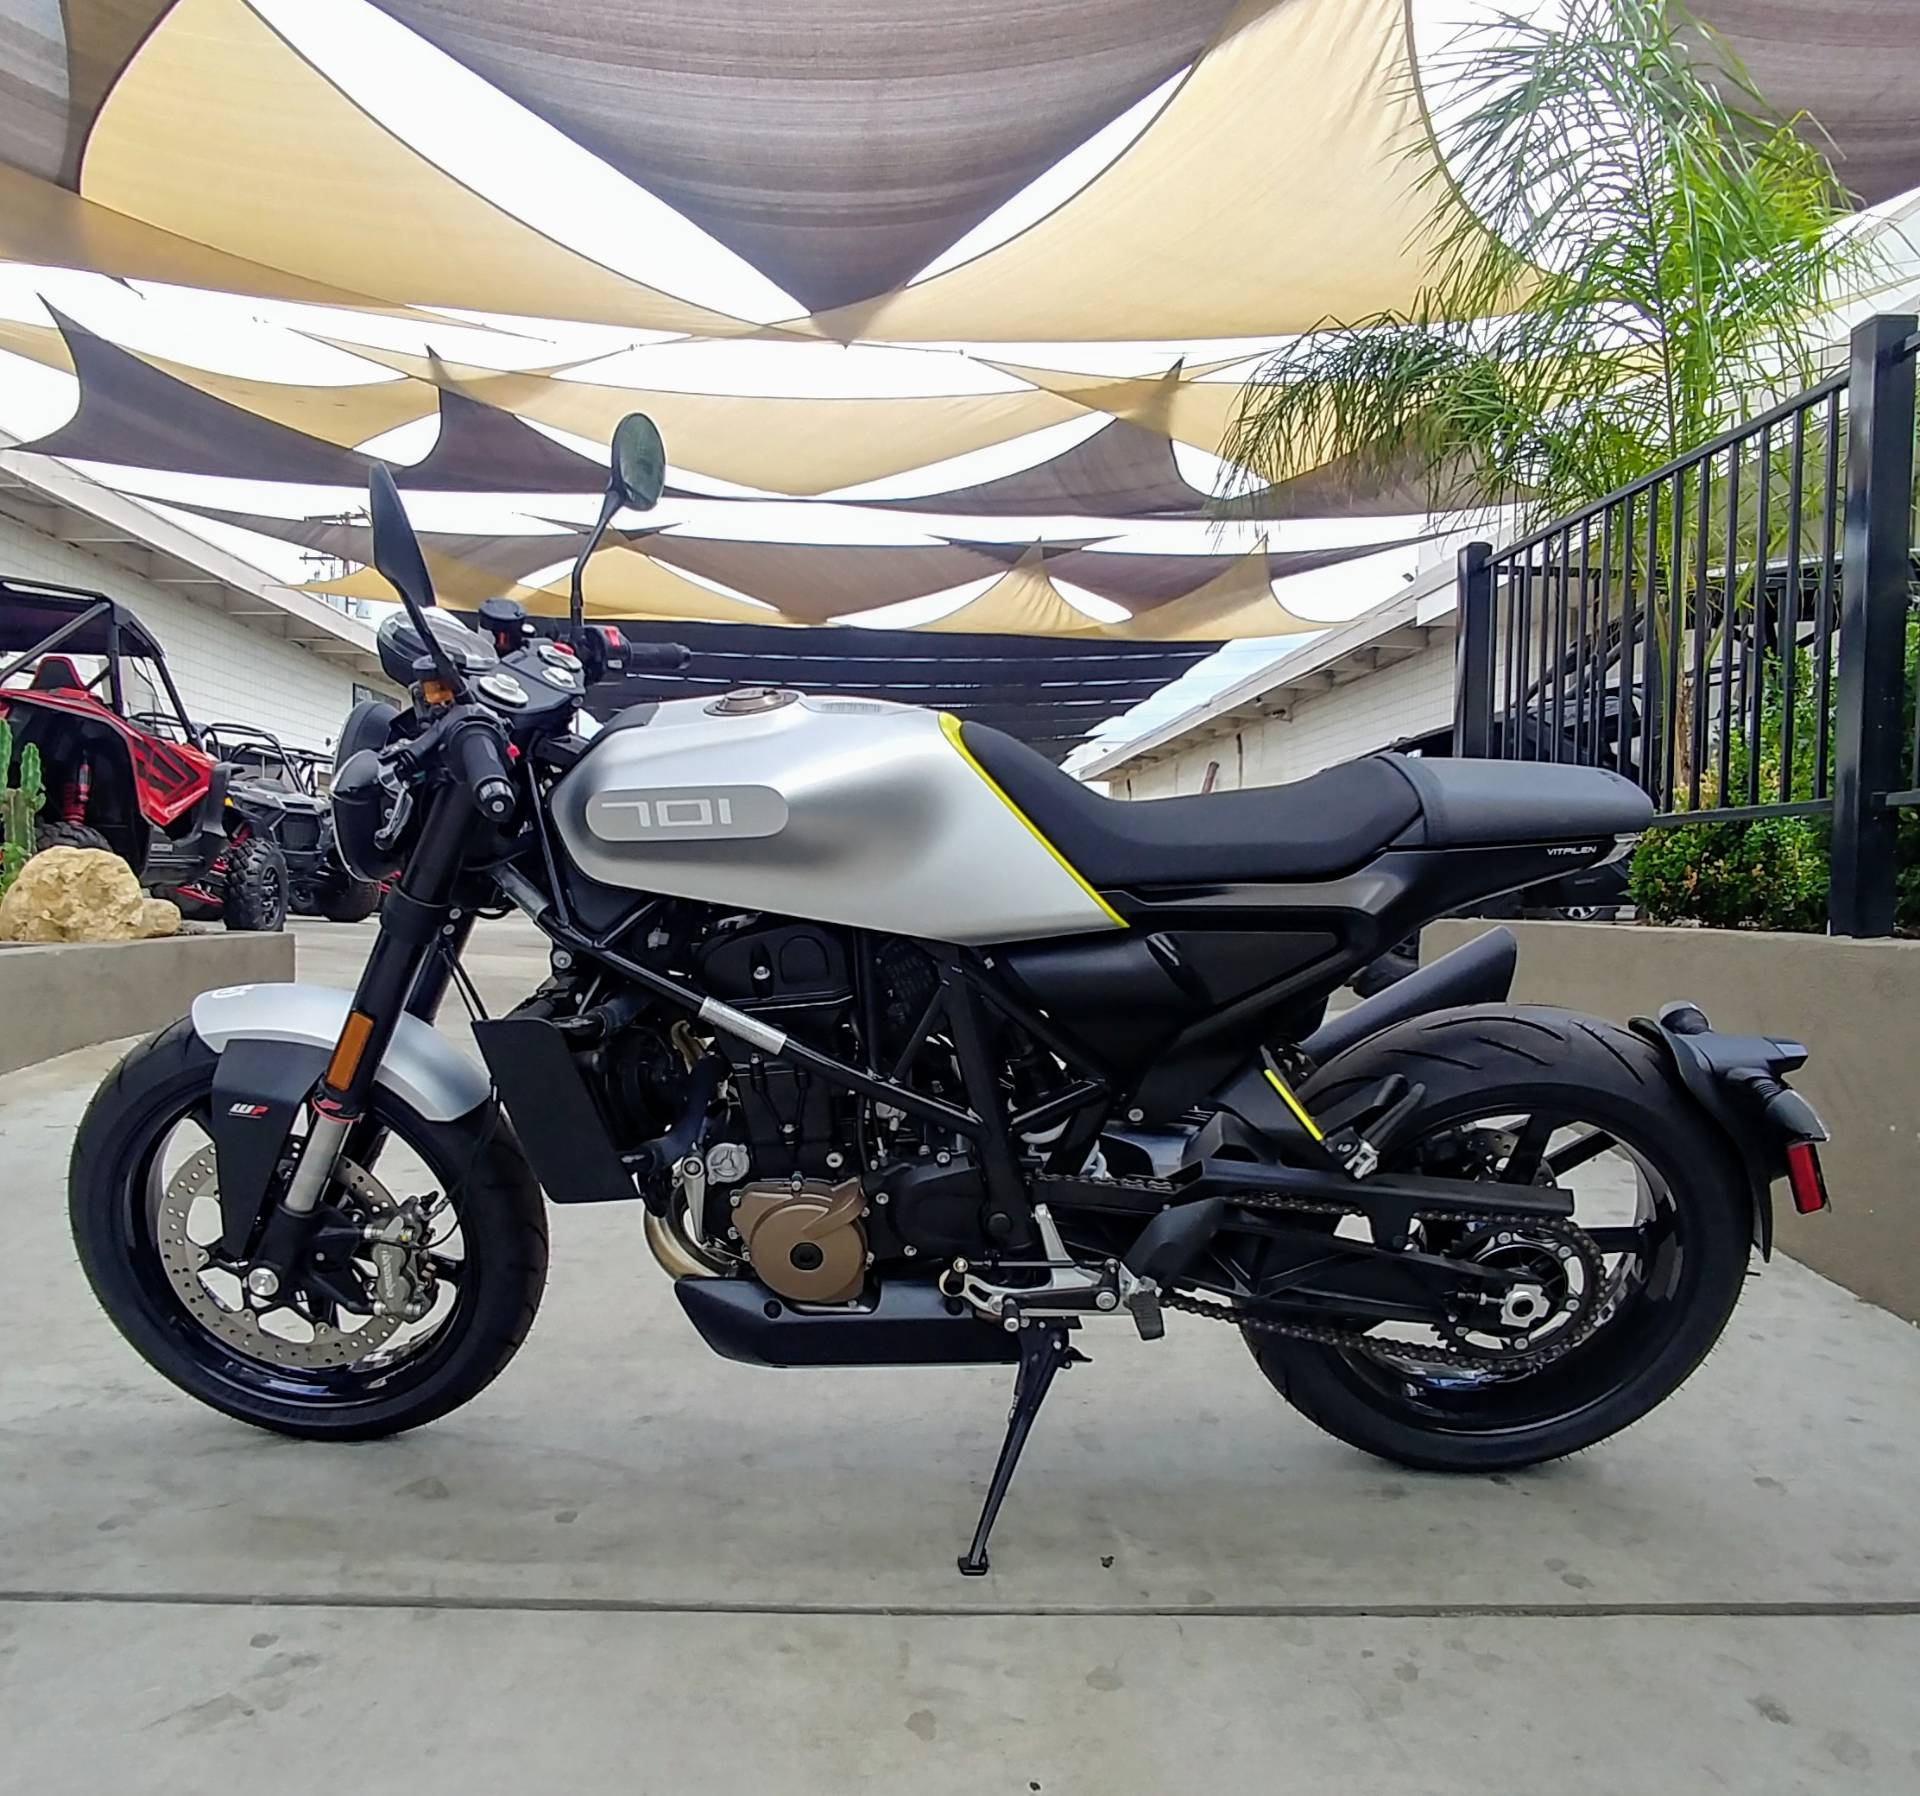 2018 Husqvarna Vitpilen 701 in Ontario, California - Photo 6